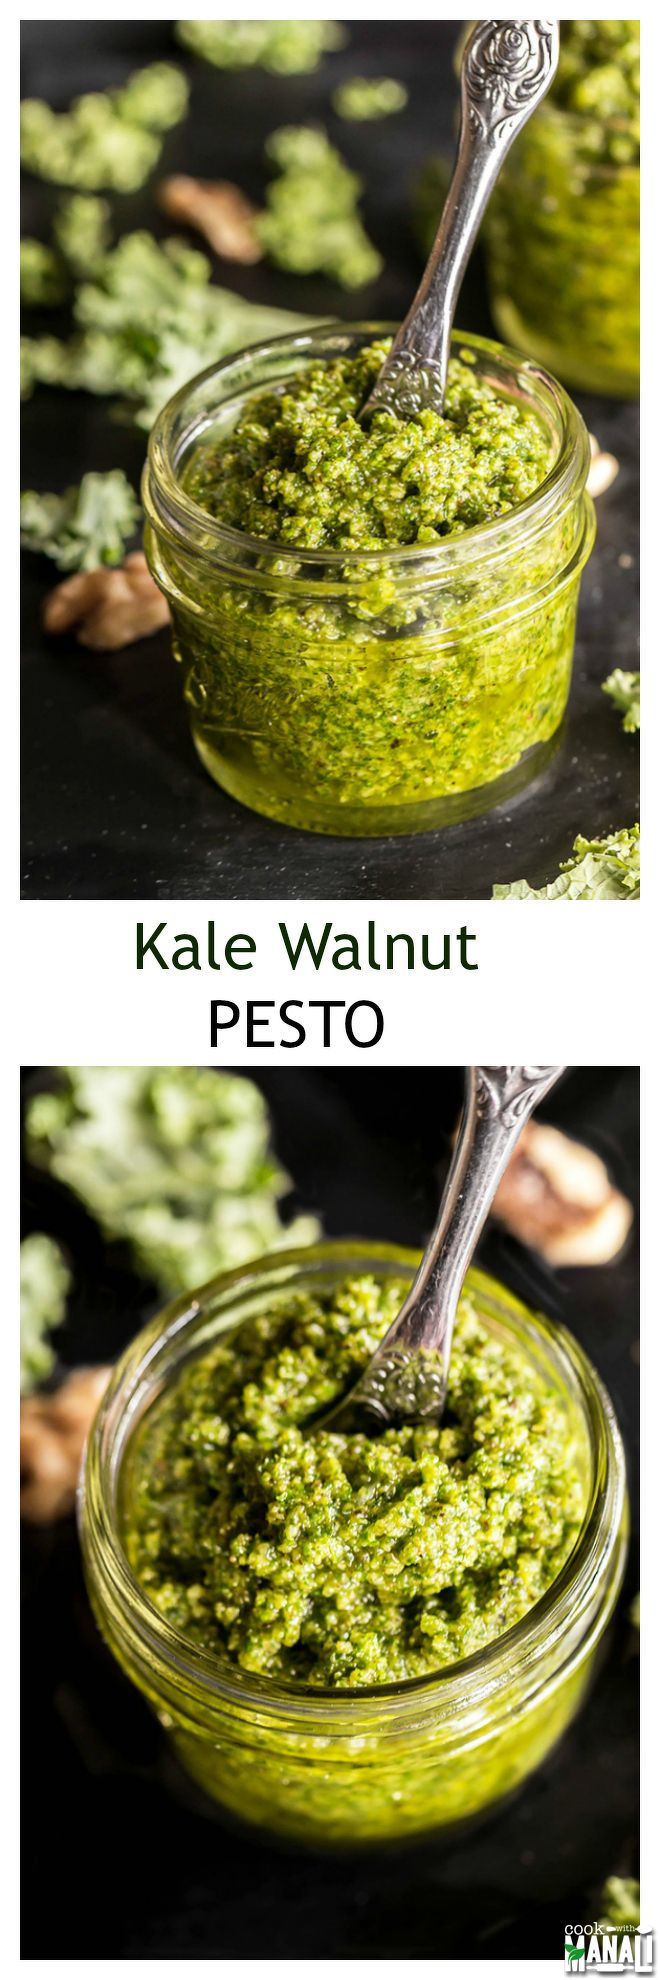 Kale Walnut Pesto is a super versatile sauce which is so good on just anything and everything! Add it to your sandwiches, veggies, pasta, pizza and much more! Find the recipe on www.cookwithmanali.com